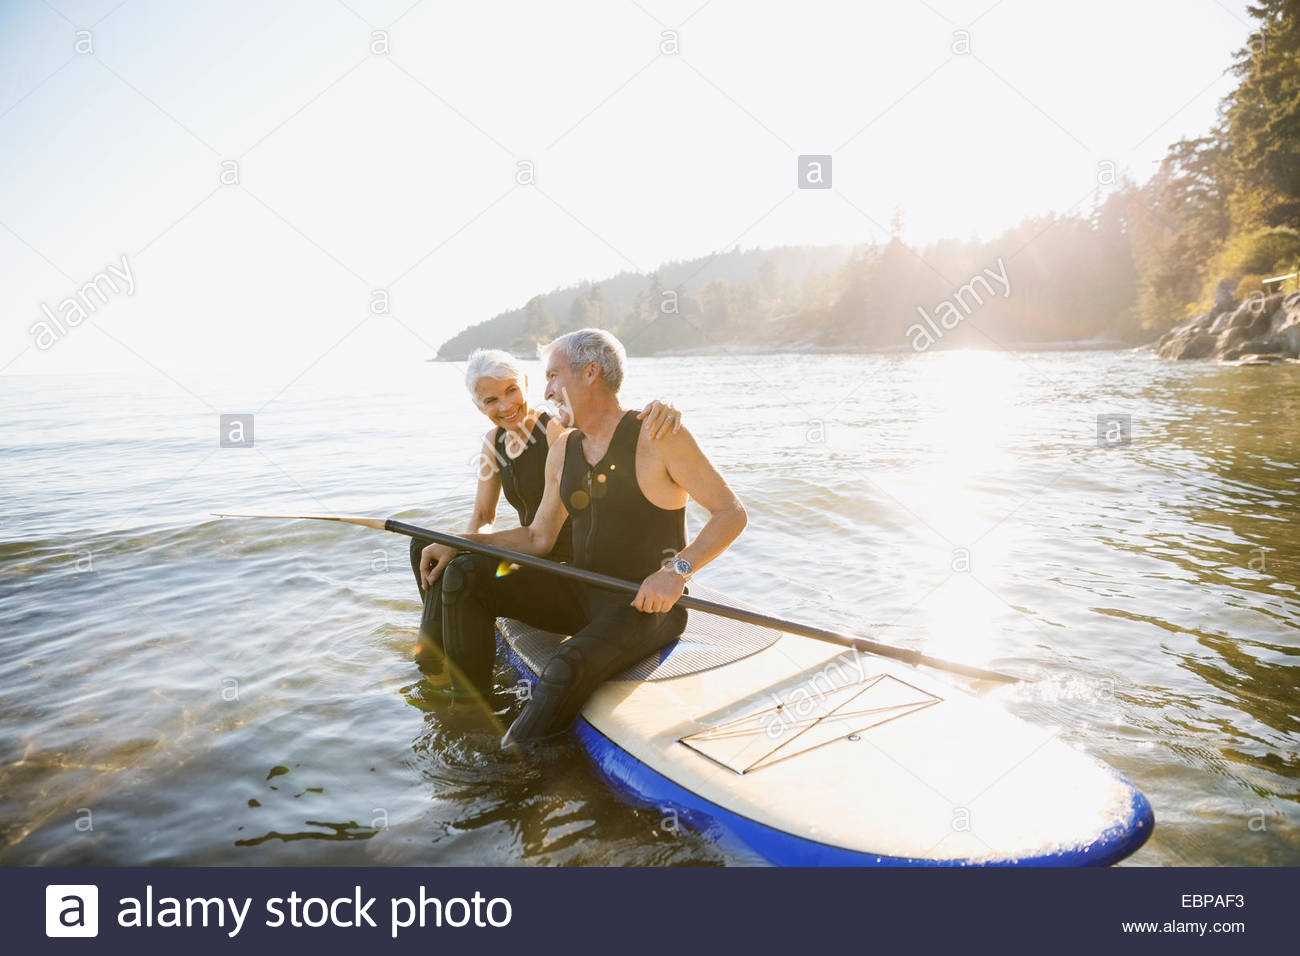 Senior couple on paddle board in ocean Photo Stock